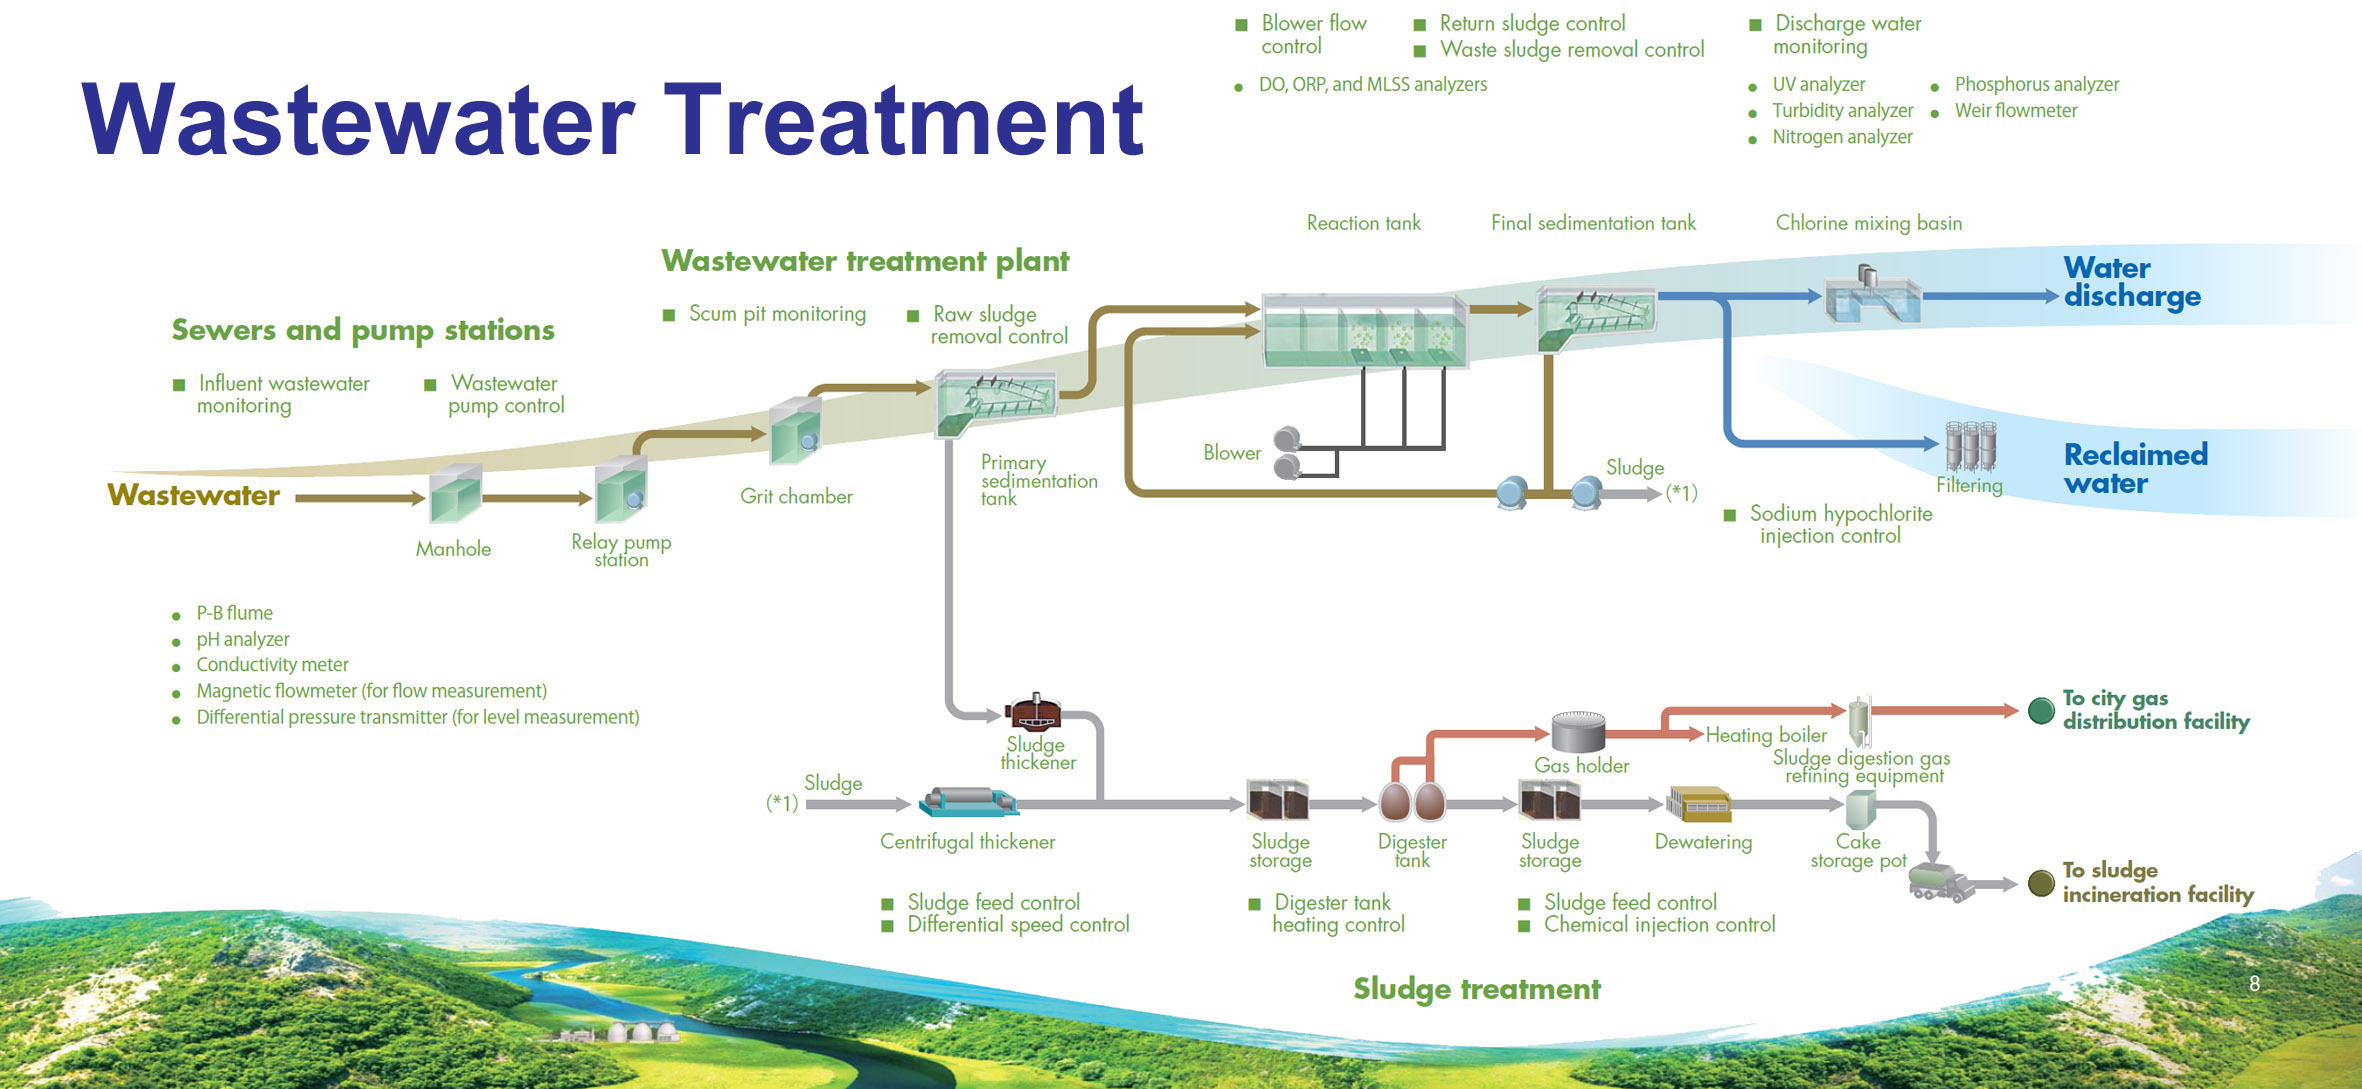 an analysis of the septic system functionality for waste water Tompkins county wastewater treatment public sewer service areas and septic site suitability analysis septic systems to function effectively10.